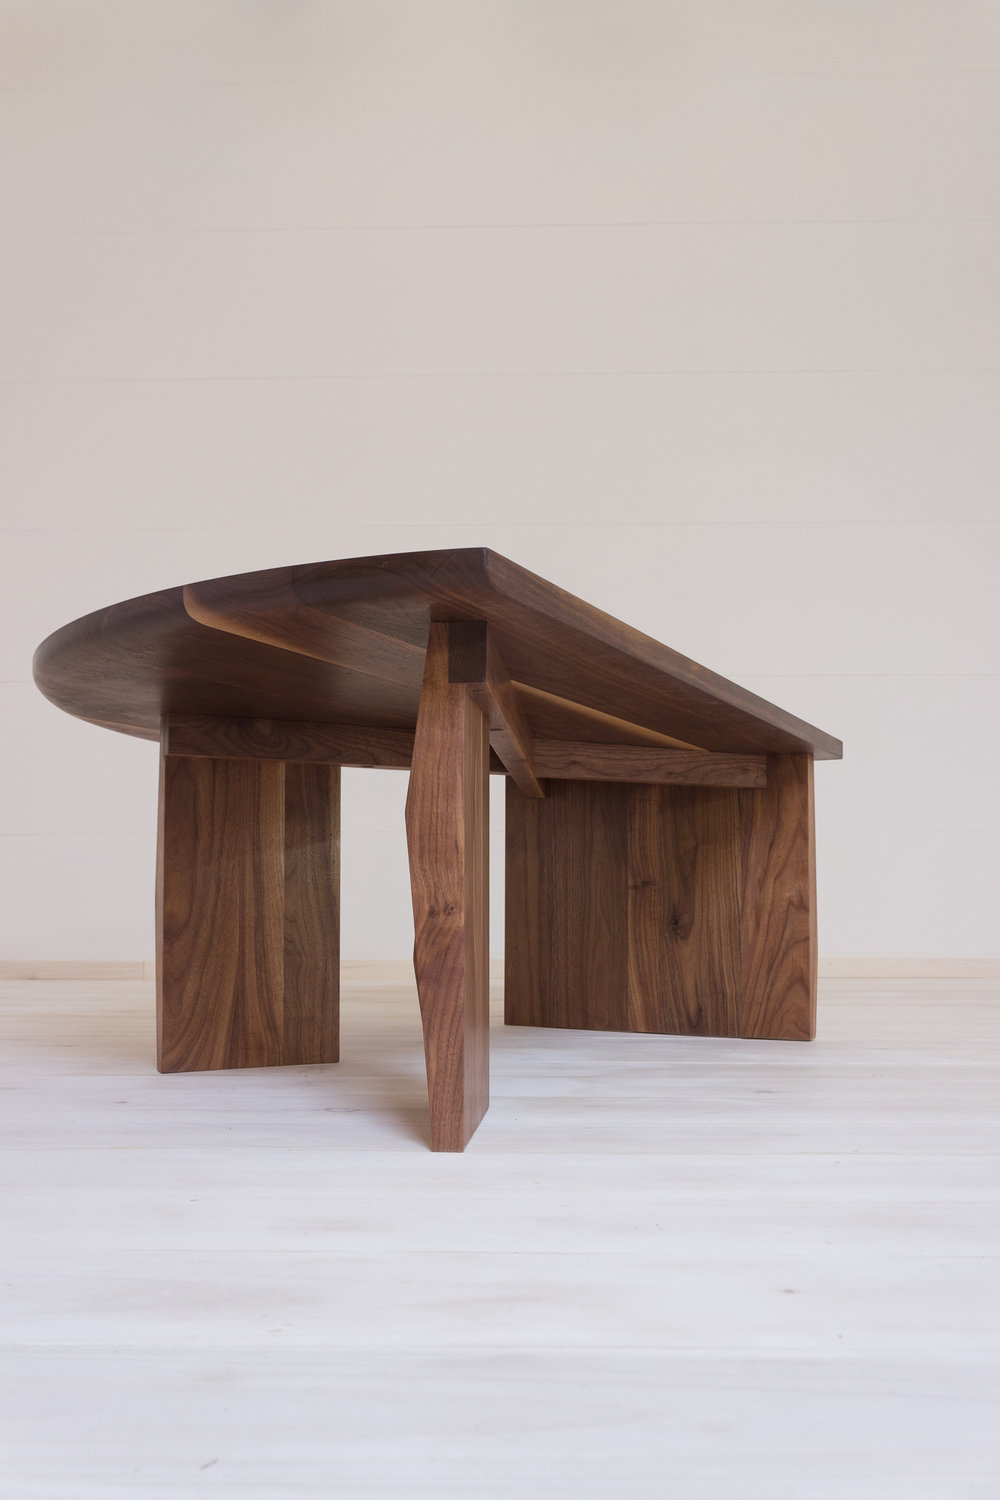 CoffeeTable_011.JPG